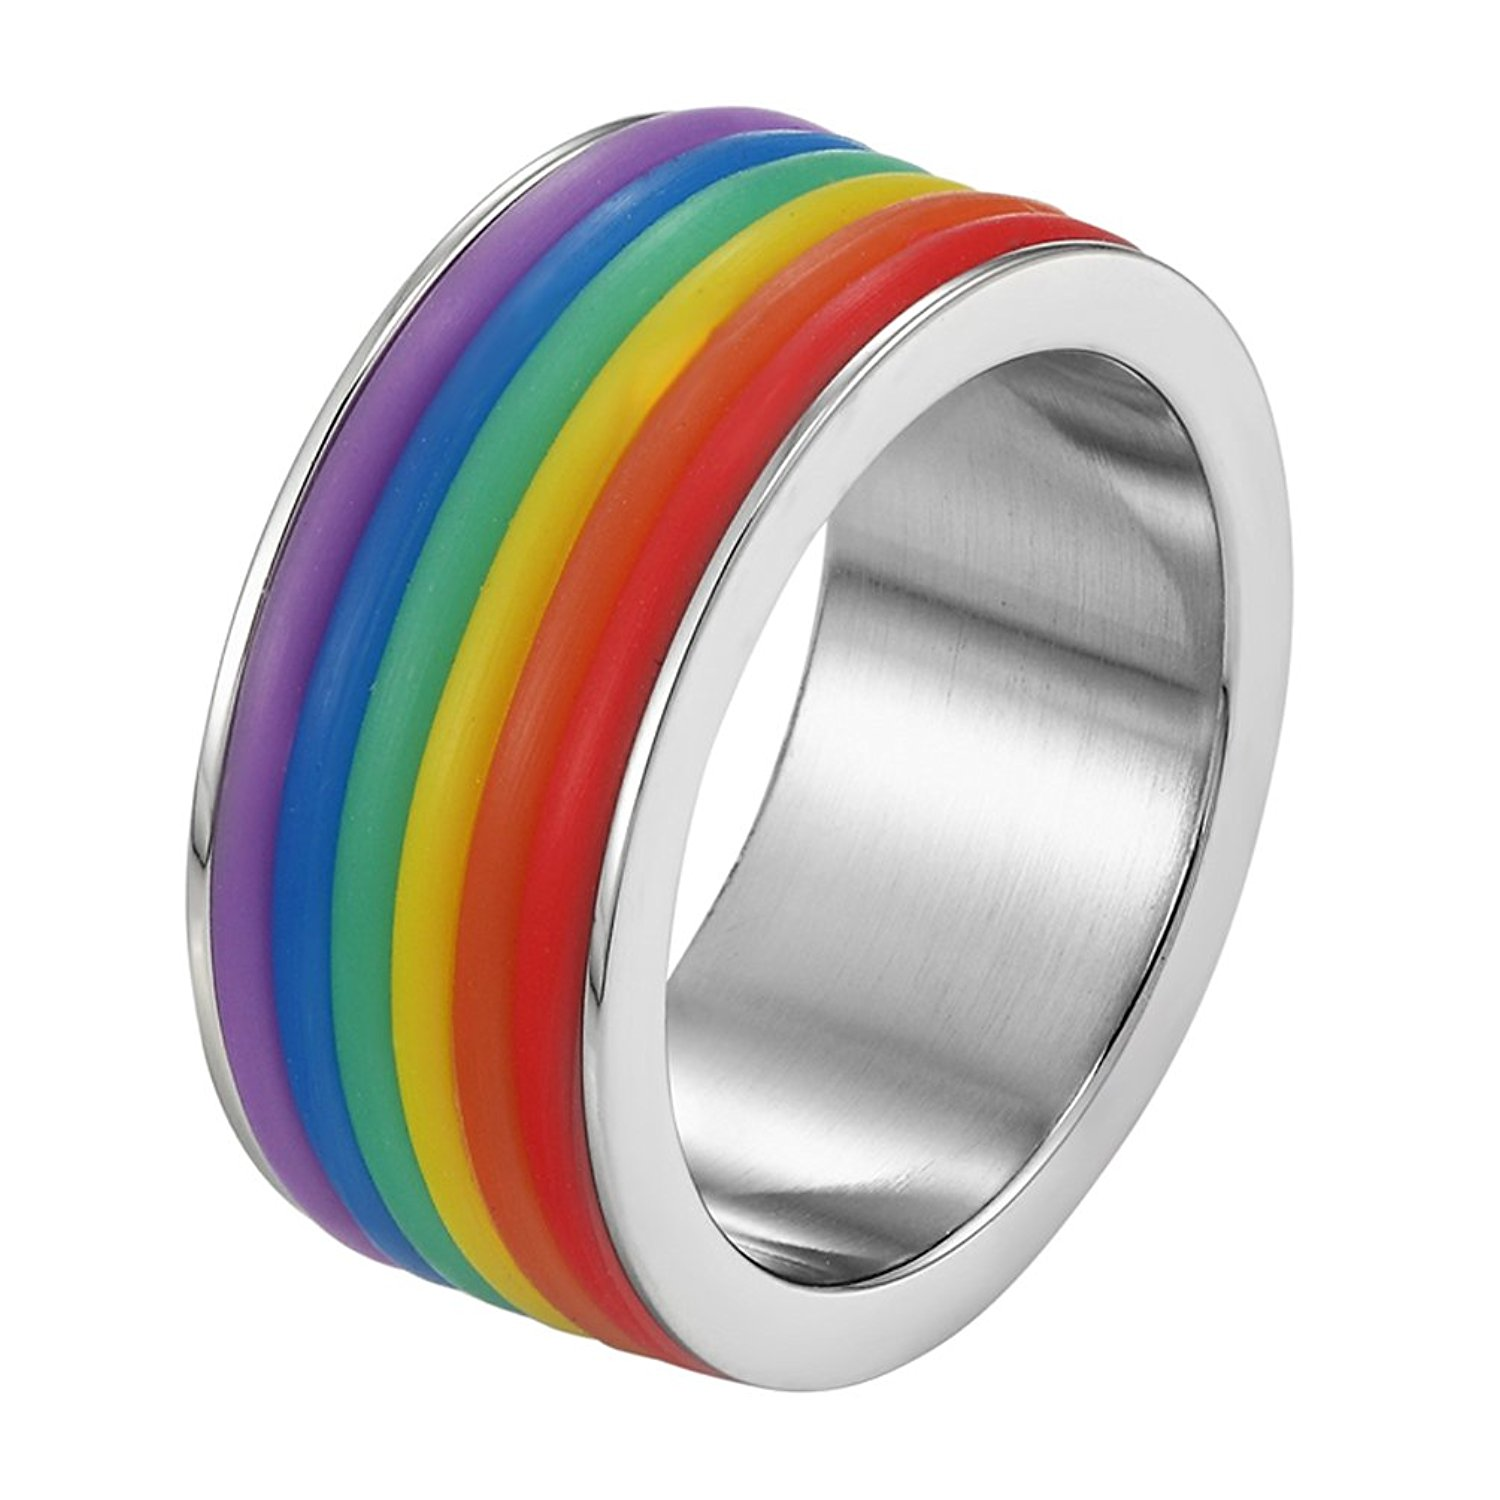 1pc Gay Pride Stainless Steel Rainbow Ring Band LGBT Colored Stripe Jewelry Gift